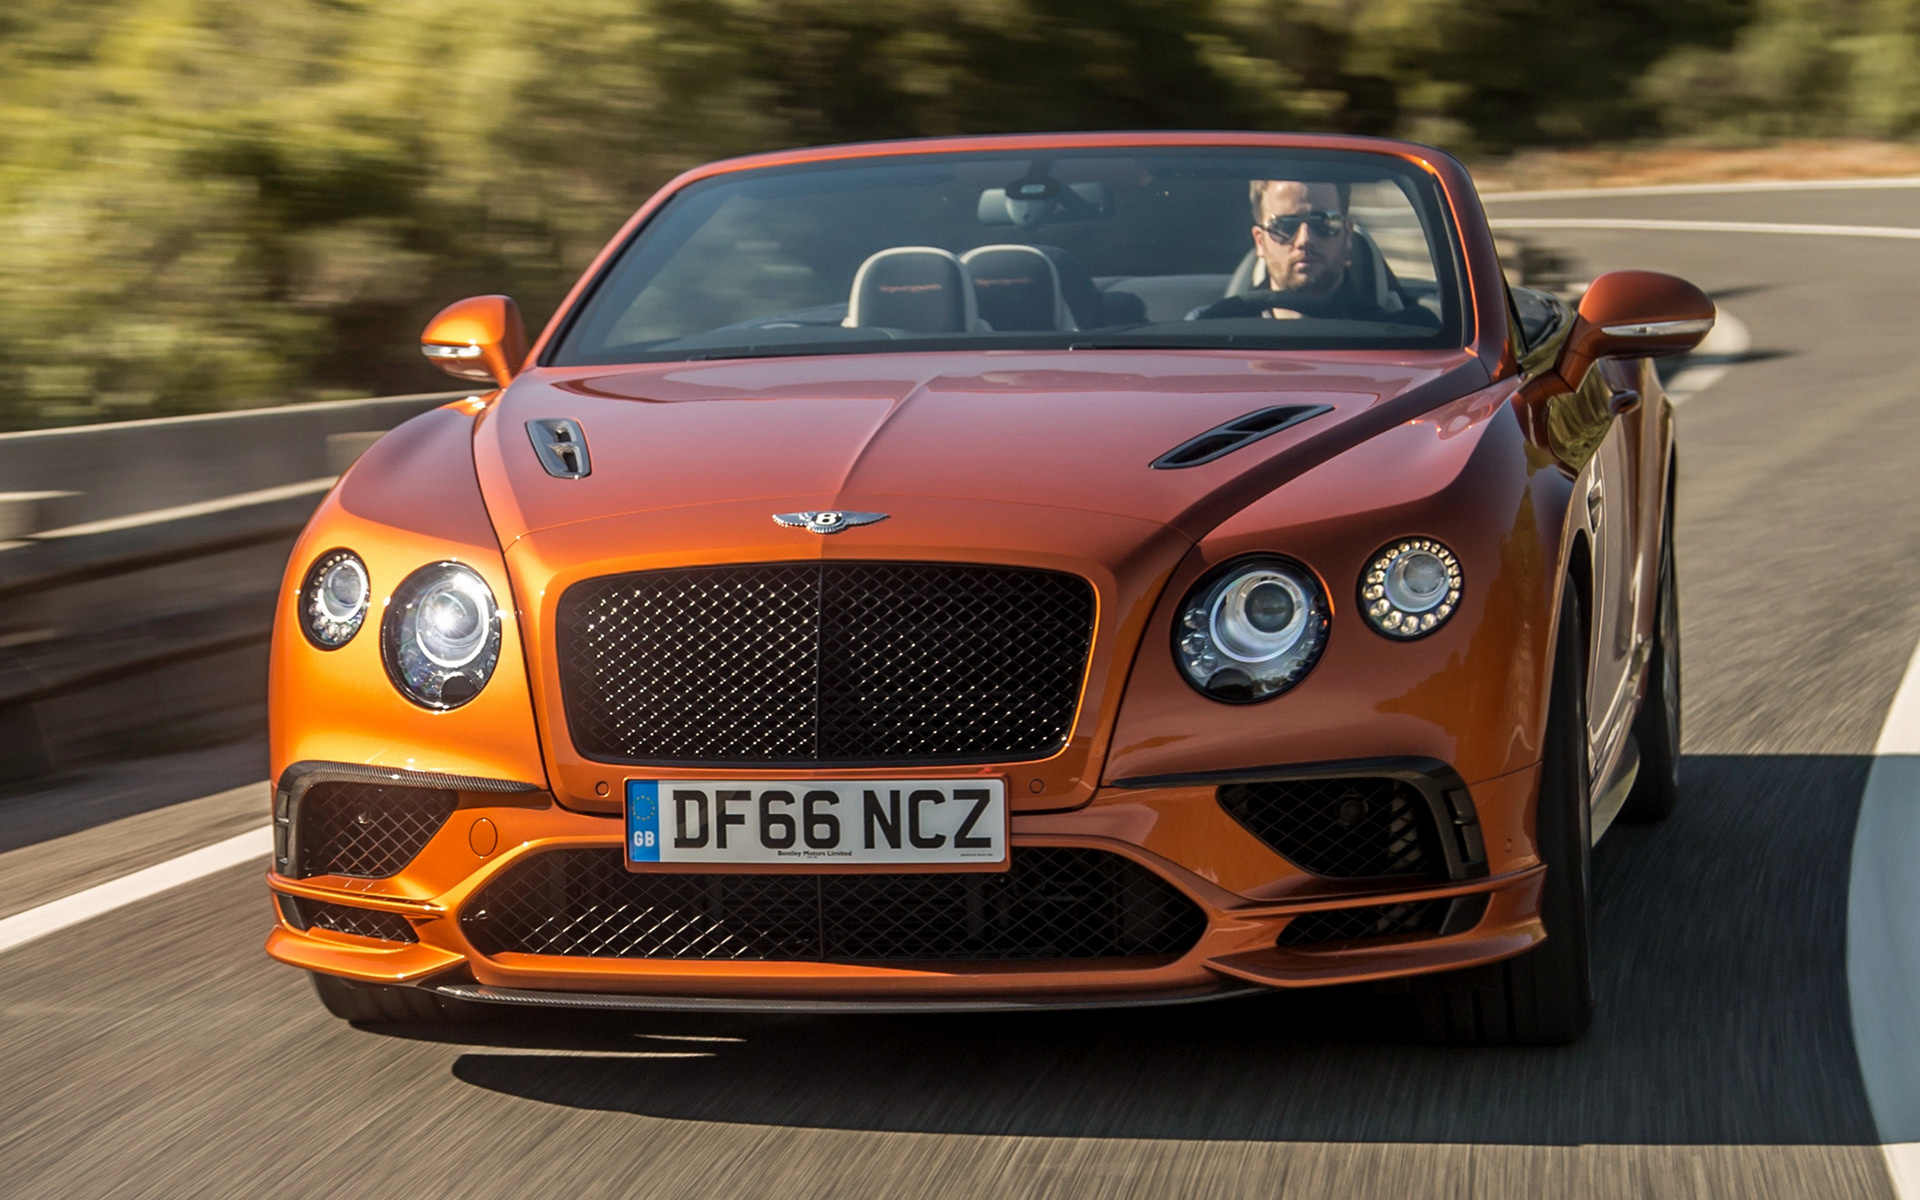 2017 Bentley Continental Gt Convertible >> 2017 Bentley Continental Supersports Convertible - Wallpapers and HD Images | Car Pixel